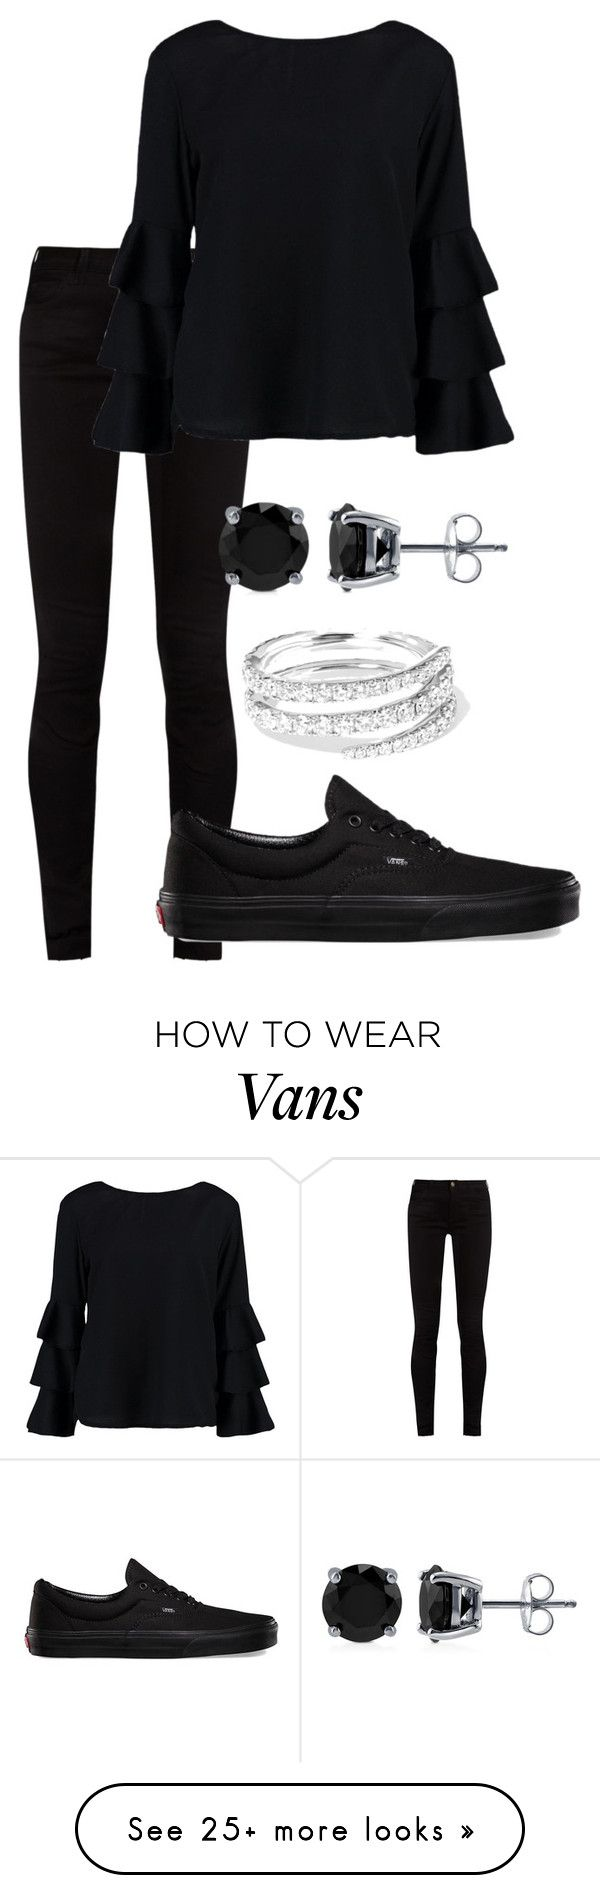 """""""Untitled #415"""" by nehal-esmail on Polyvore featuring Gucci, Vans, Anita Ko, Boohoo and BERRICLE"""